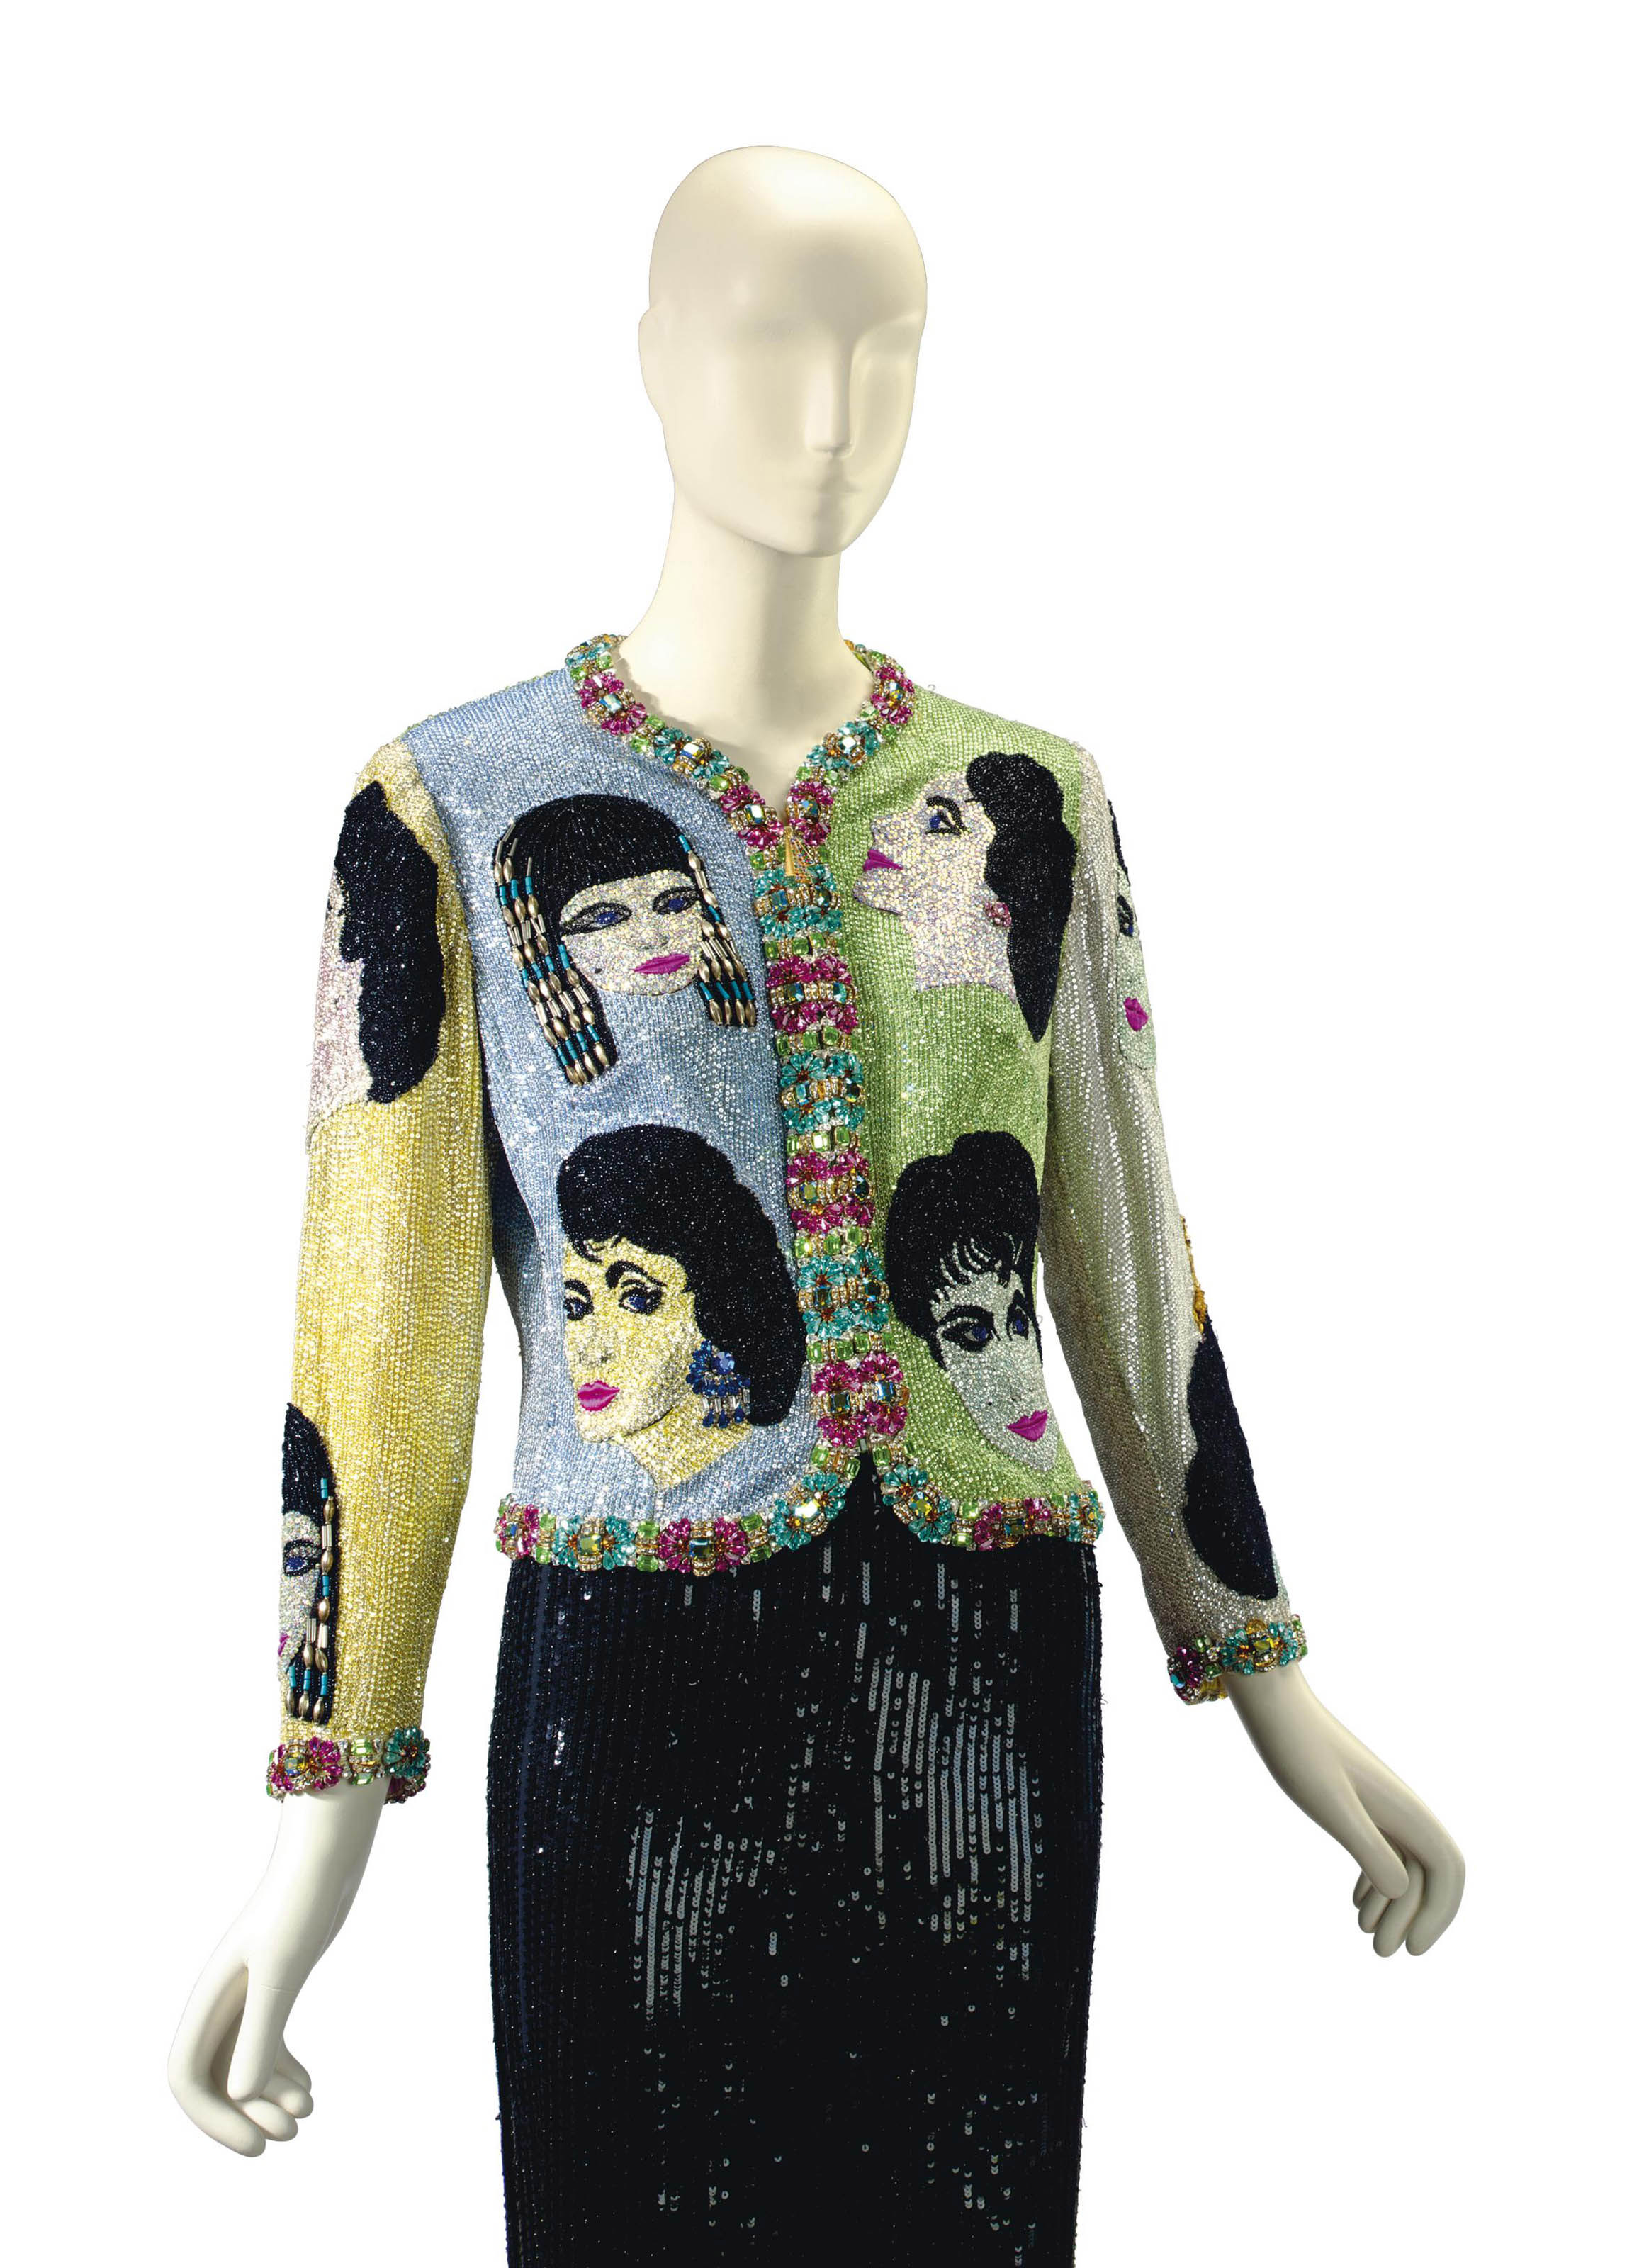 A VERSACE BEADED EVENING JACKET, 'THE FACE'